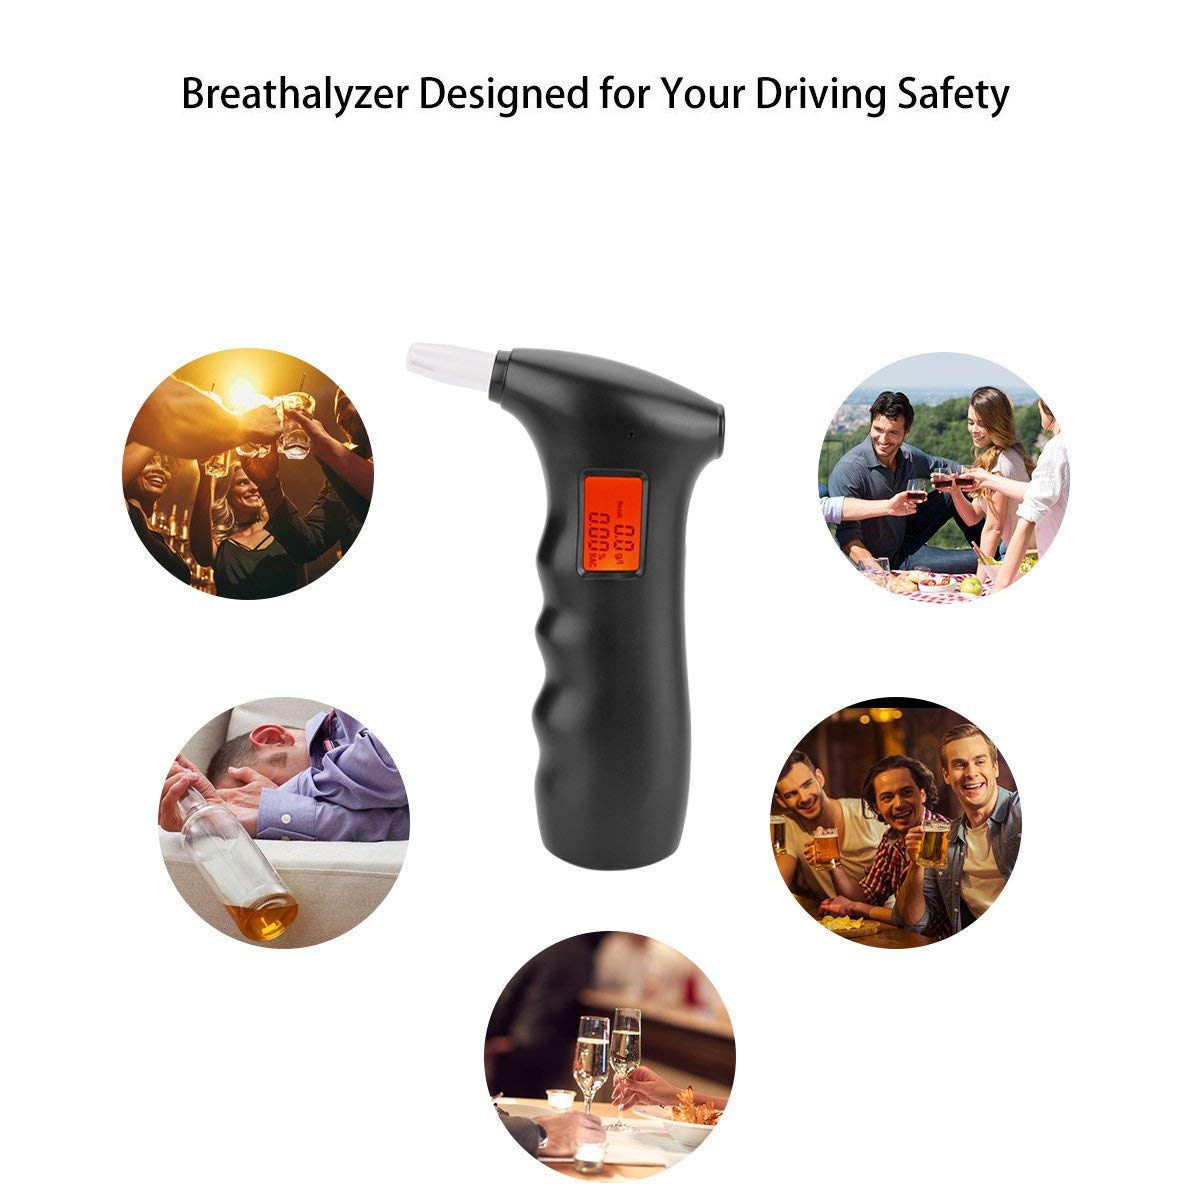 Large Digital LCD Display Extra 5 Pcs Mouthpieces Alcohol Tester in the back of the tester POMILE Breathalyzer Portable Breath Analyzer with Semi-conductor Sensor